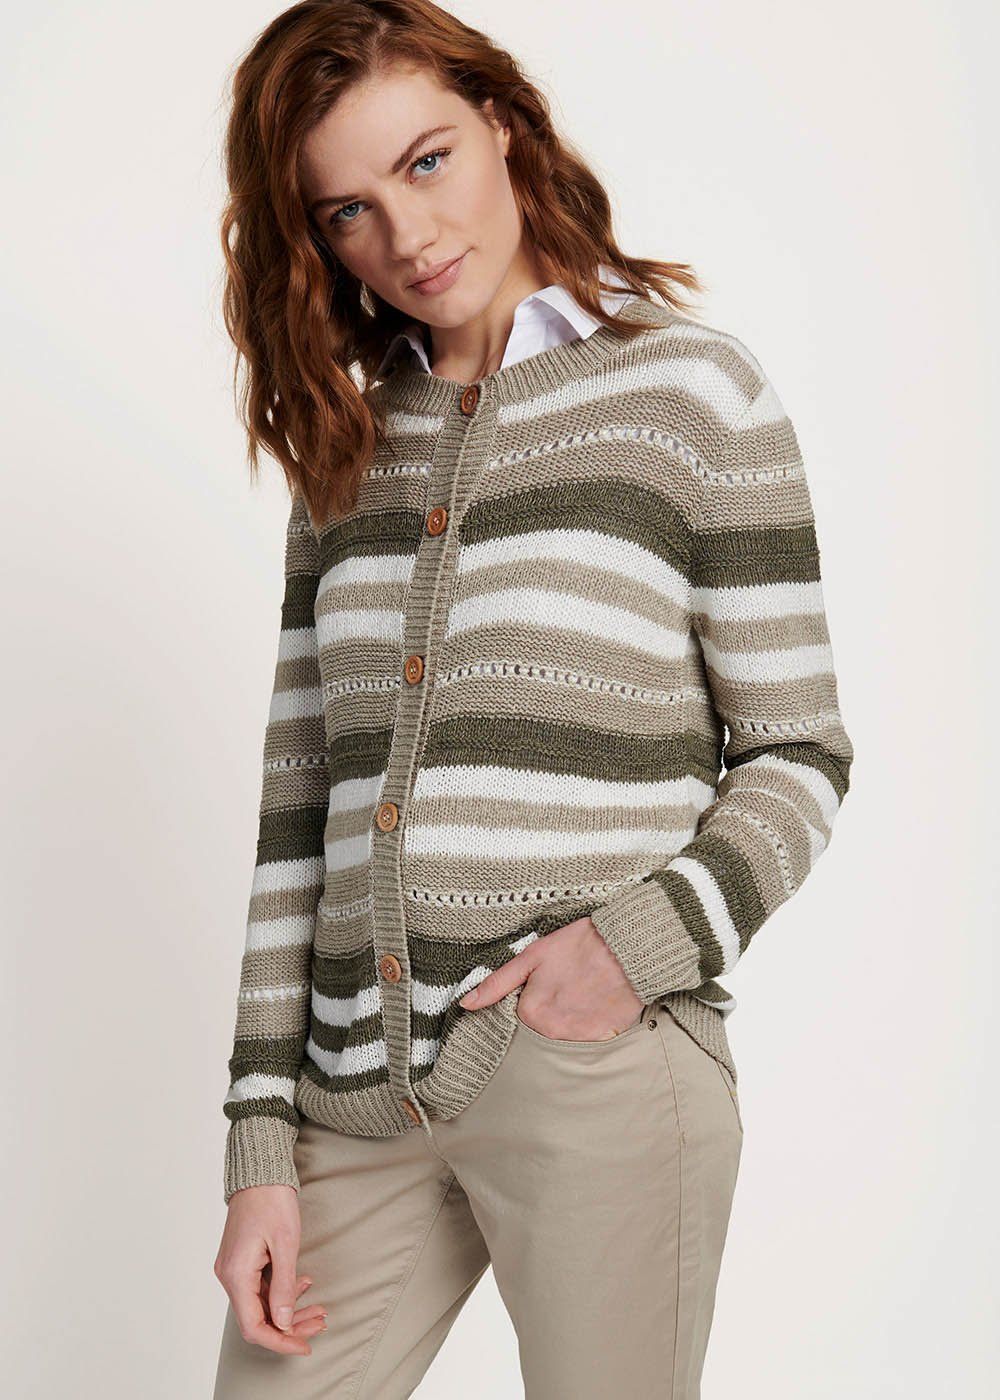 Clair cardigan with multicolour stripes - Timo / Tofu / Stripes	 - Woman